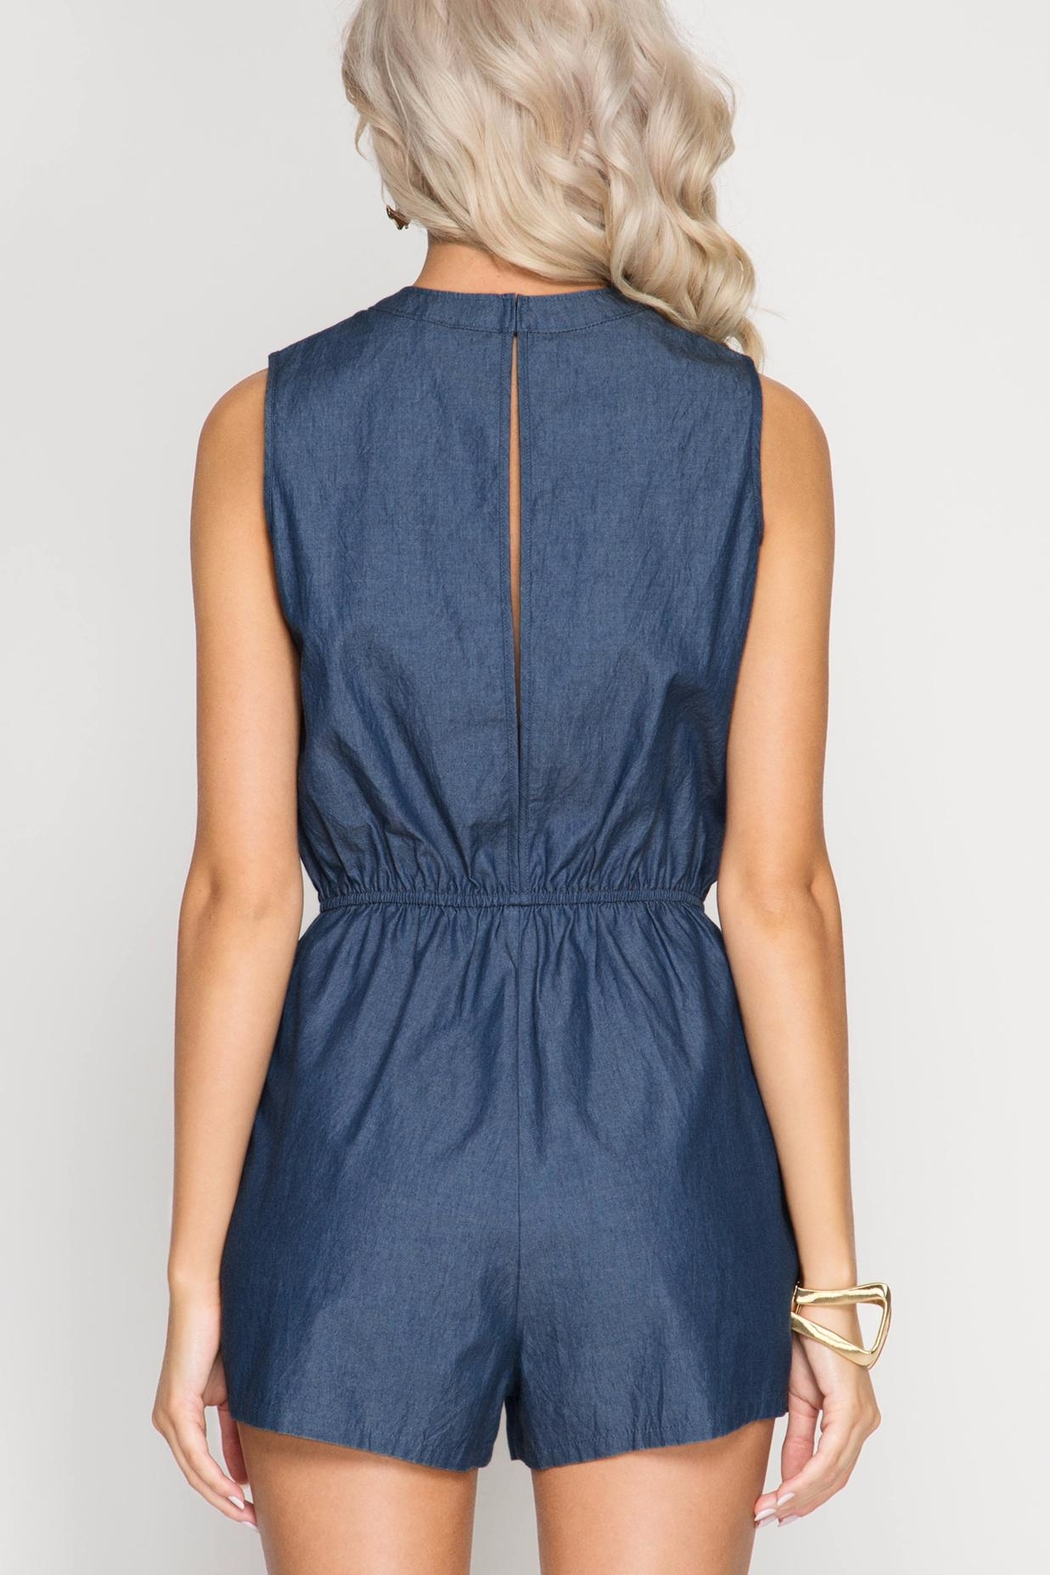 She + Sky Lace Up Chambray Romper - Side Cropped Image